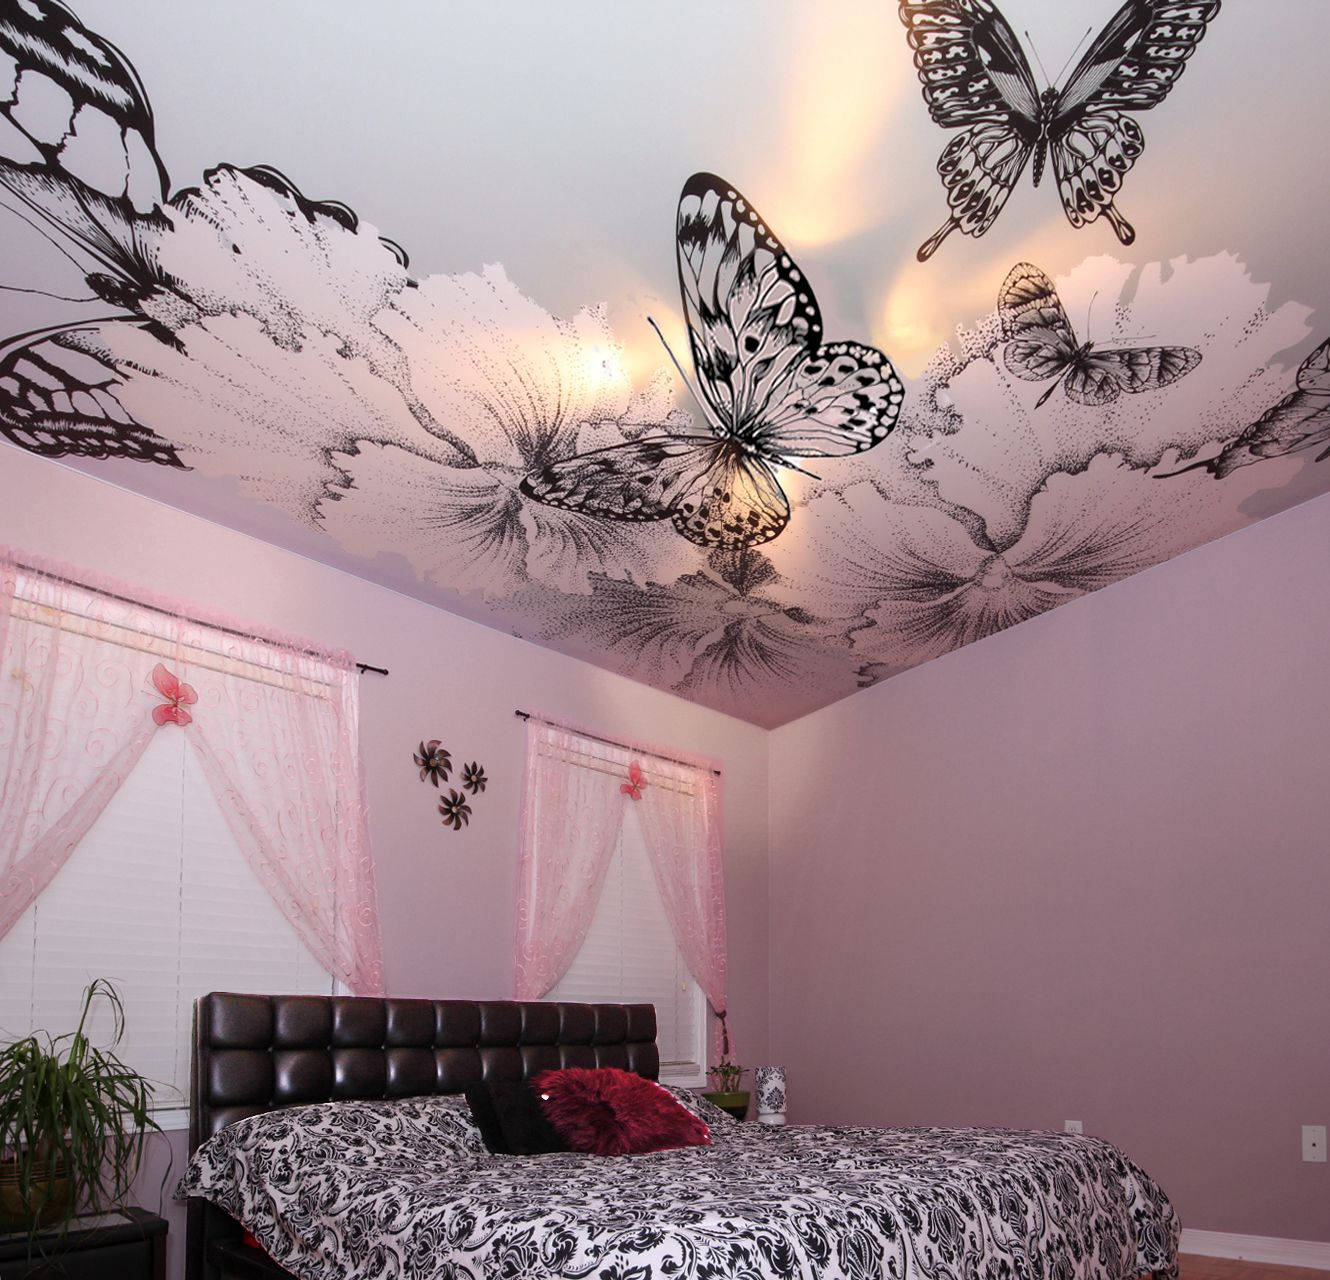 A Girls Bedroom With A Butterfly Graphic Printed On Stretch Ceiling By Laqfoil Http Blog Bedroom Design Inspiration Butterfly Bedroom Wall Murals Bedroom